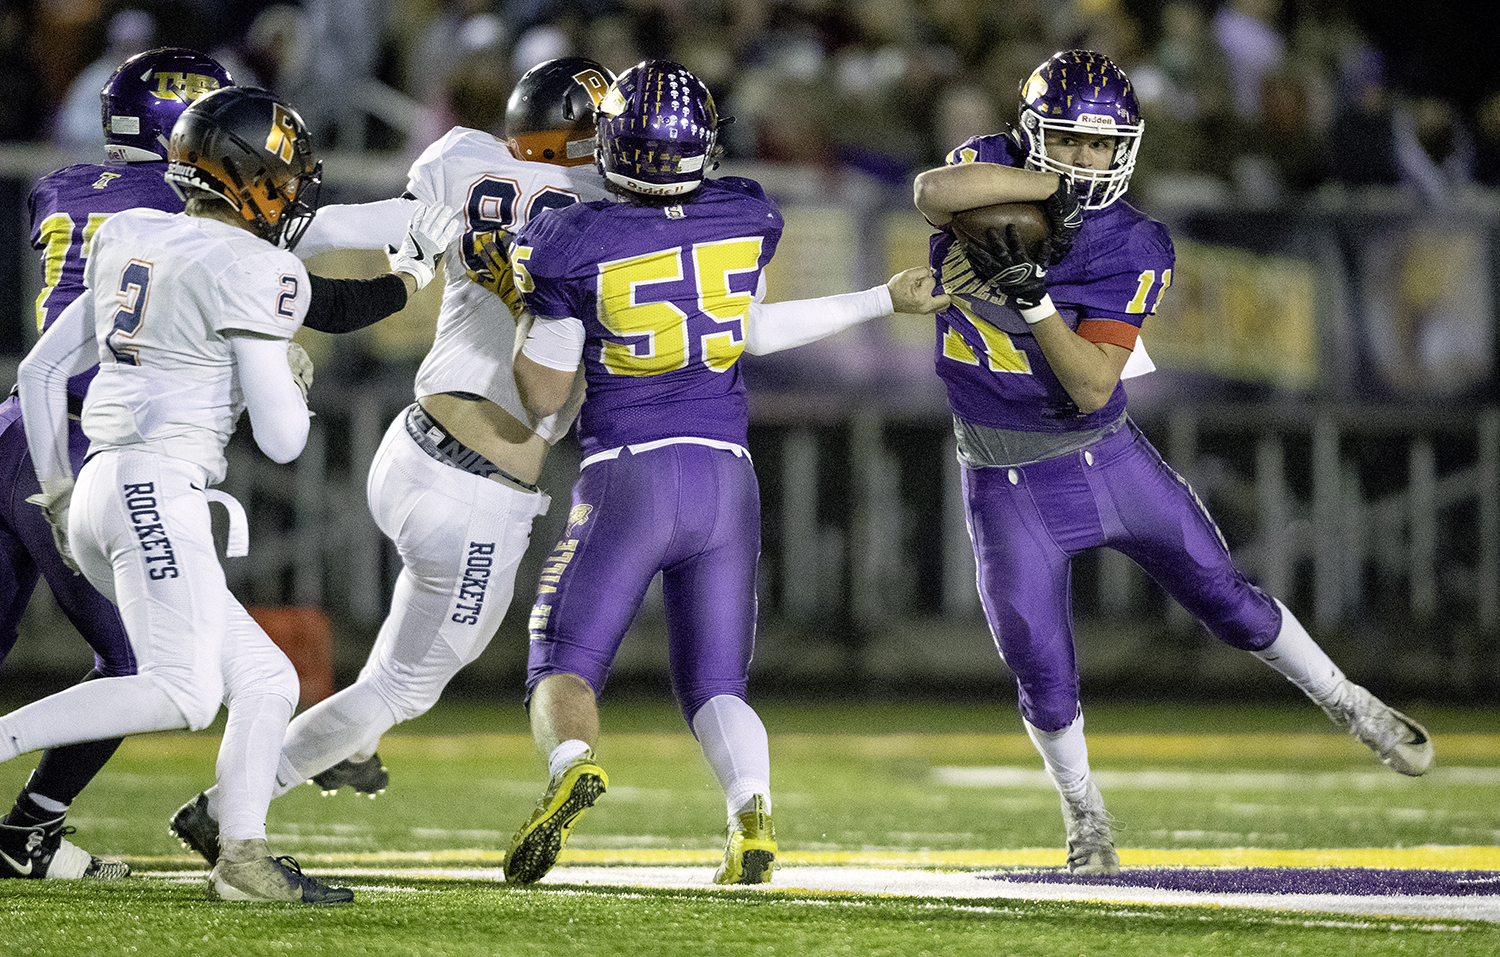 Taylorville's Brandon Odam tries to slip away from the Rochester defense during the Class 4A quarterfinals in Taylorville Saturday, Nov. 10, 2018. [Ted Schurter/The State Journal-Register]